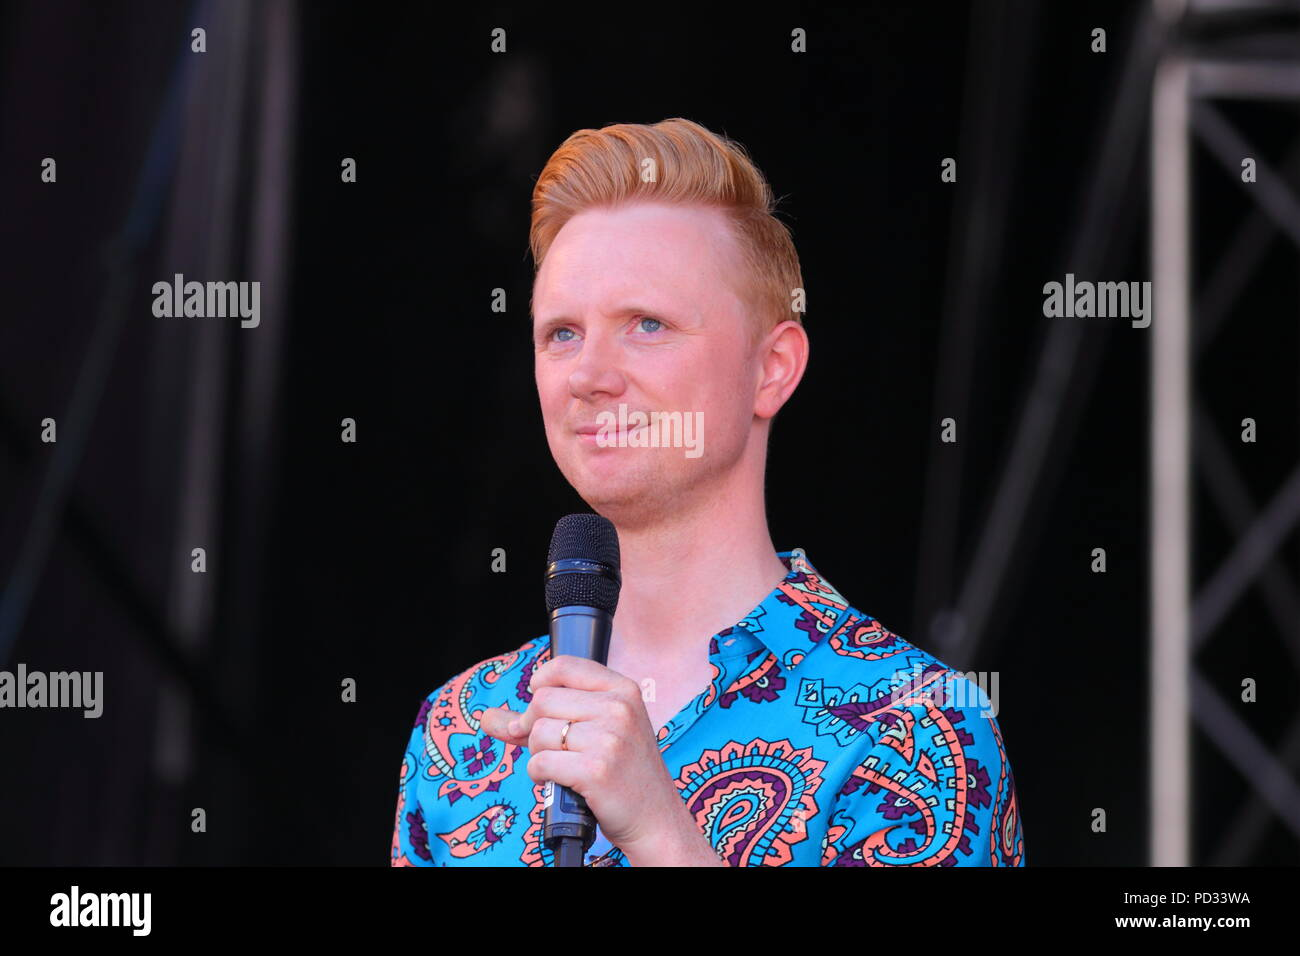 Owain Wyn Evans hosting the Leeds LGBT Pride 2018 on stage at Millennium Square in Leeds - Stock Image